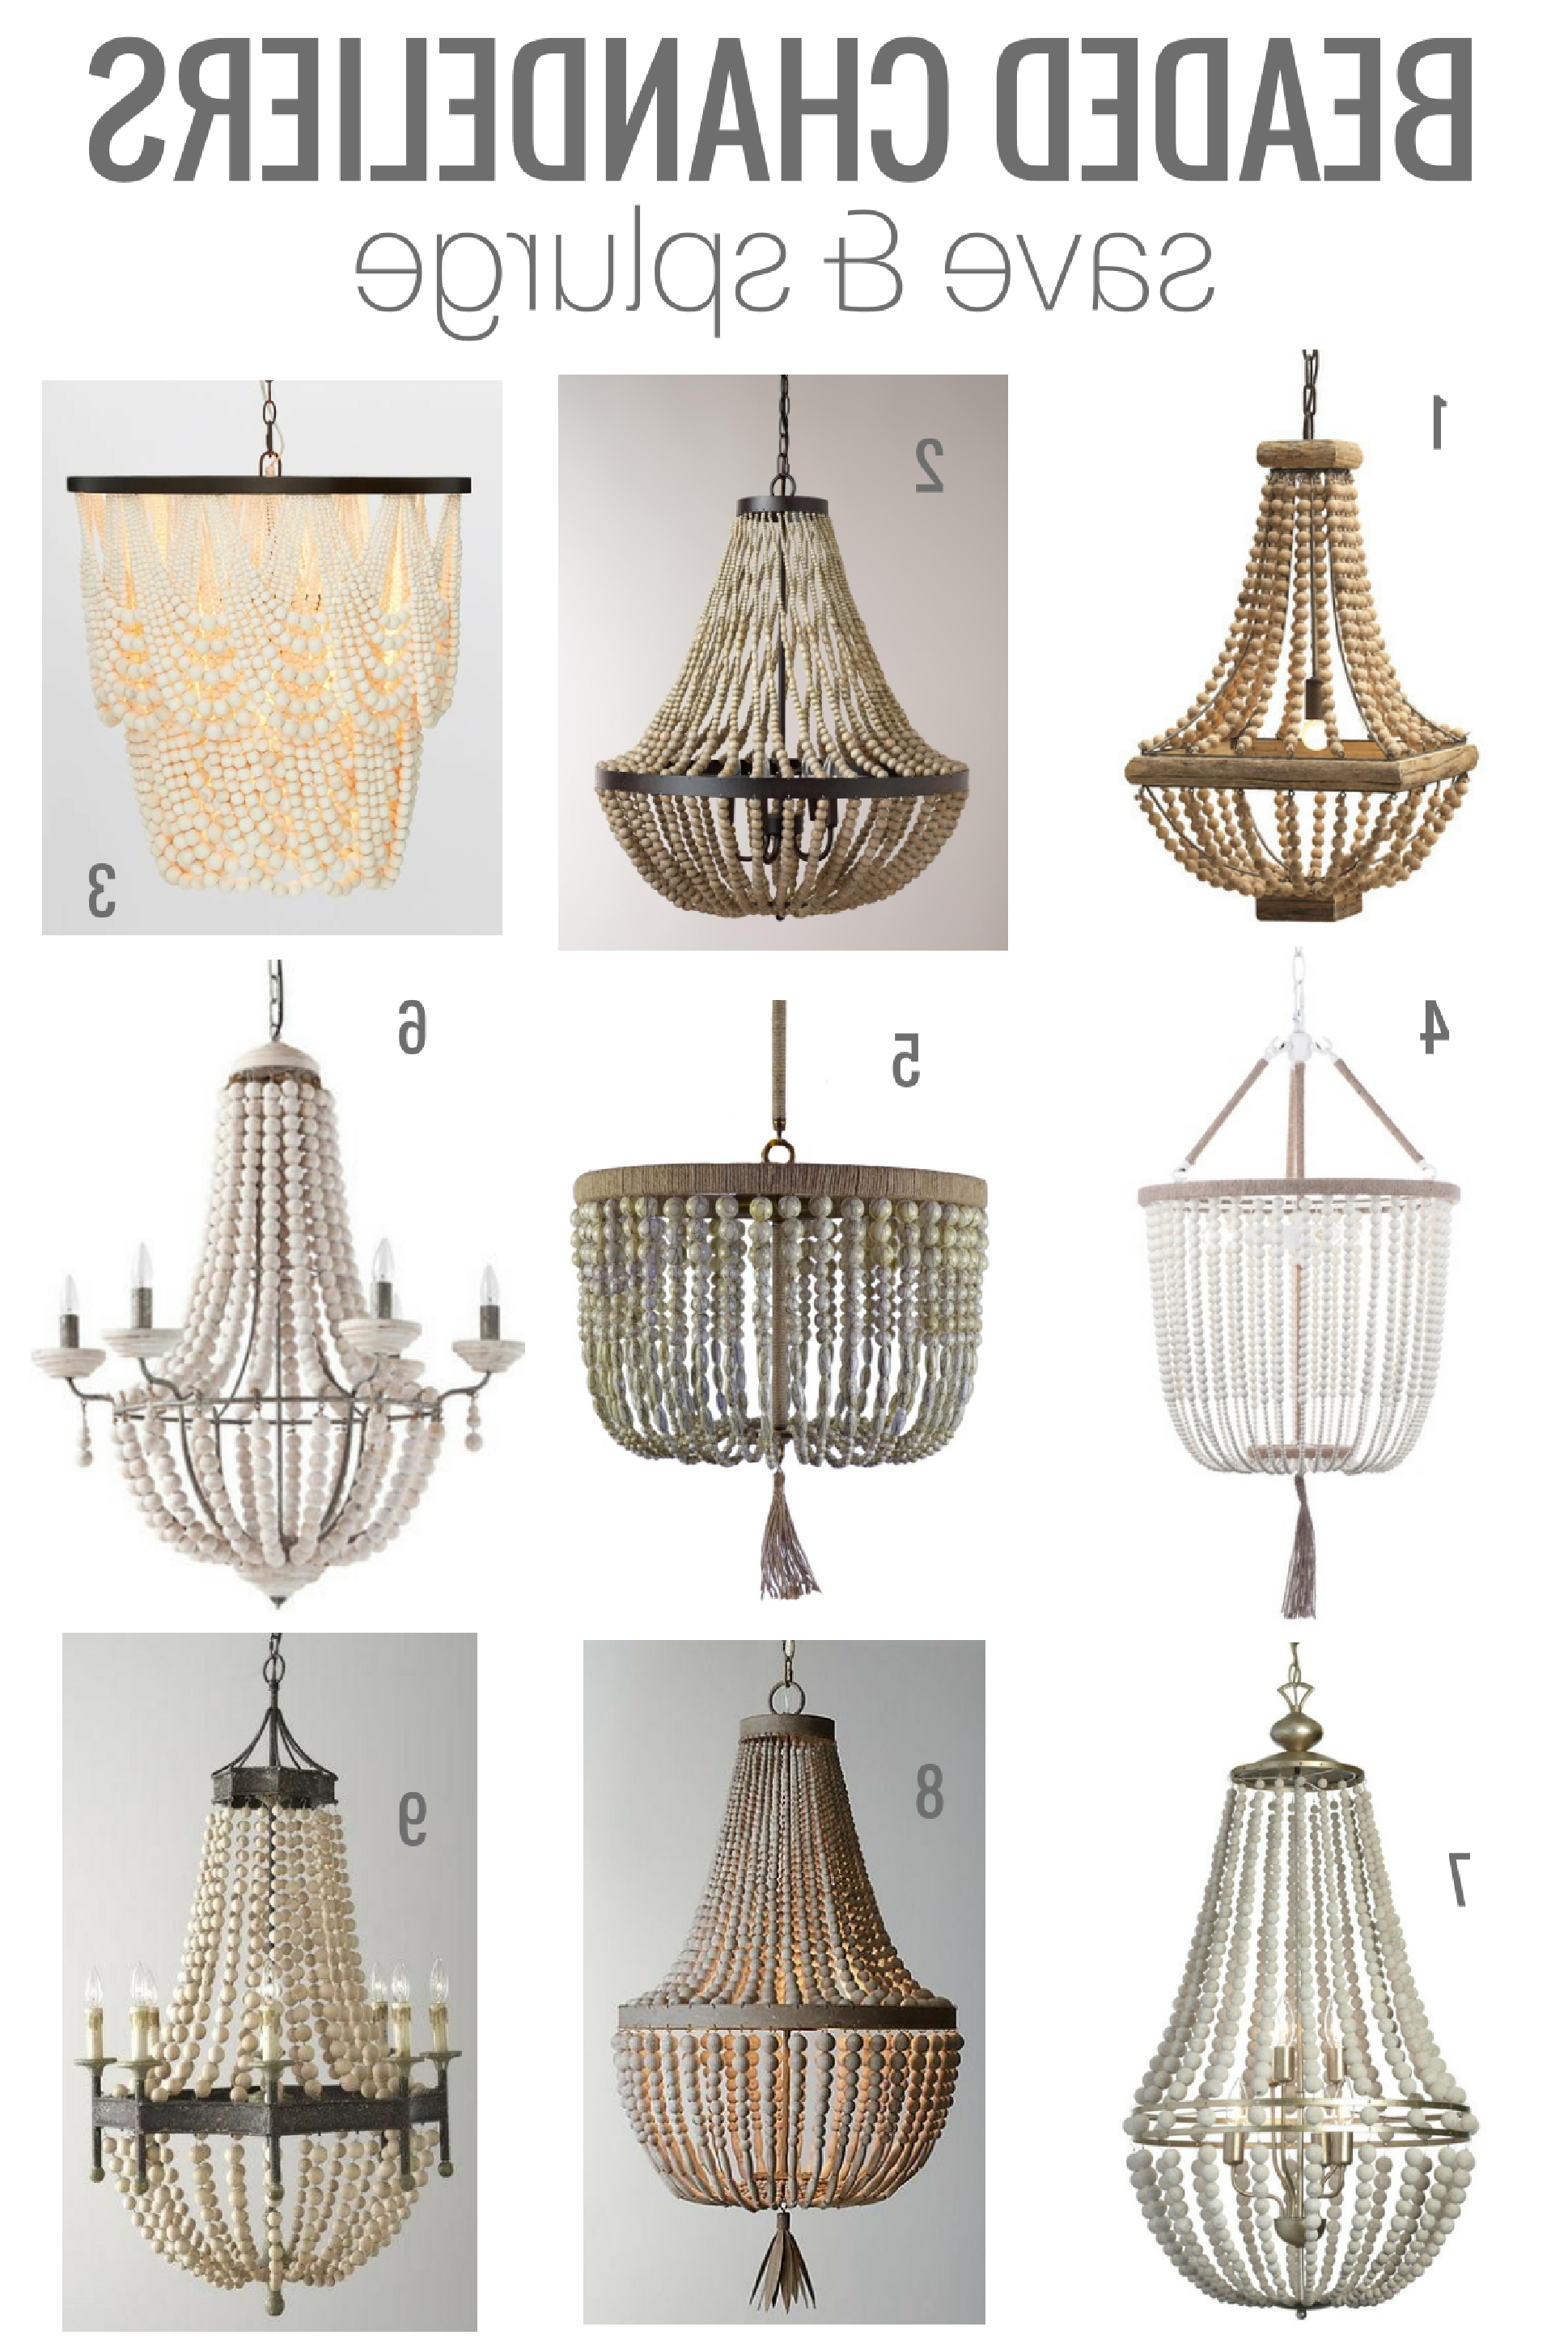 Beaded Chandeliers & Invaluable Lighting Lessons (View 15 of 15)